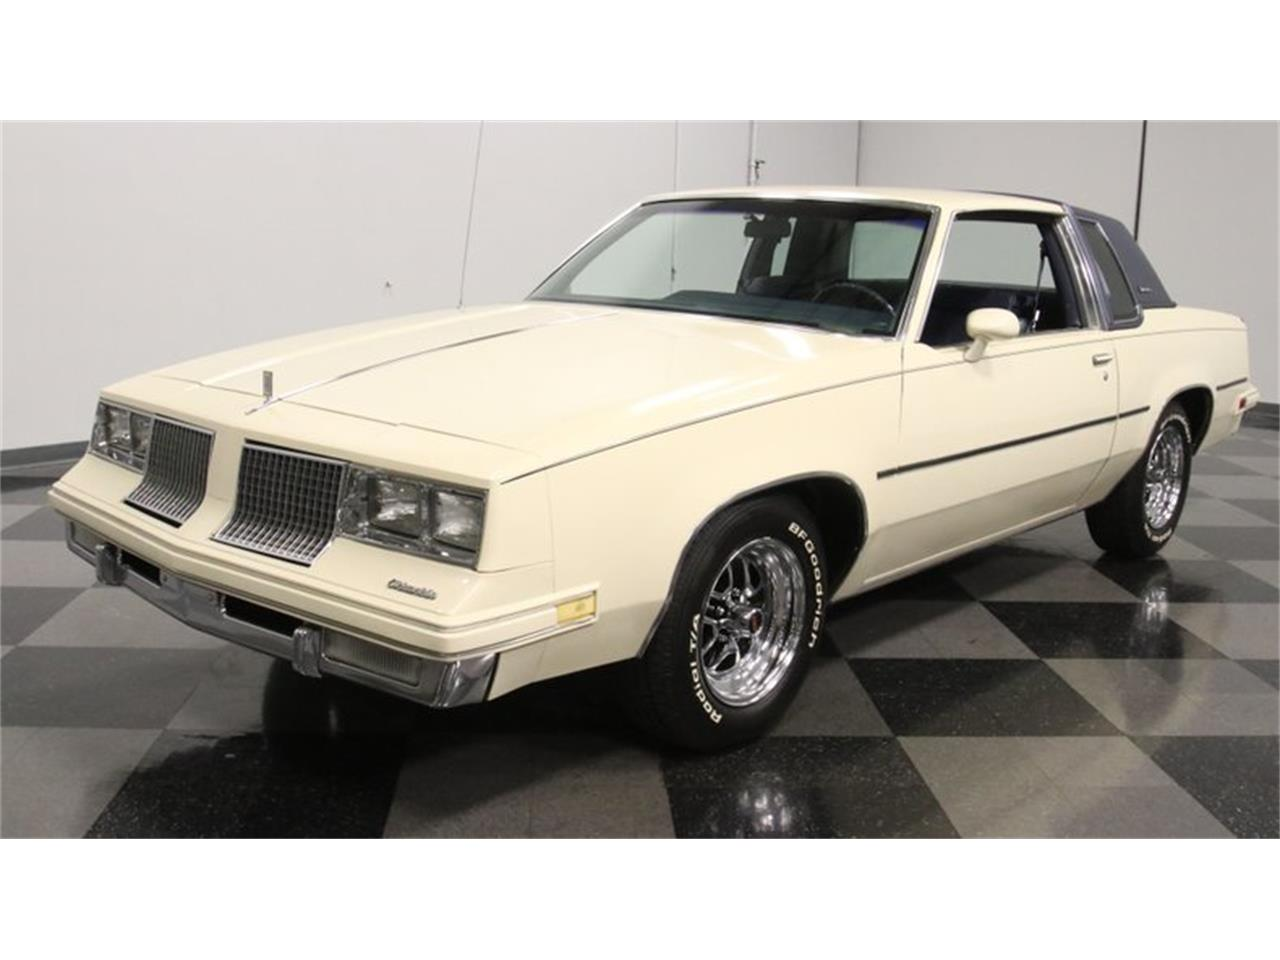 1983 Oldsmobile Cutlass (CC-1311416) for sale in Lithia Springs, Georgia